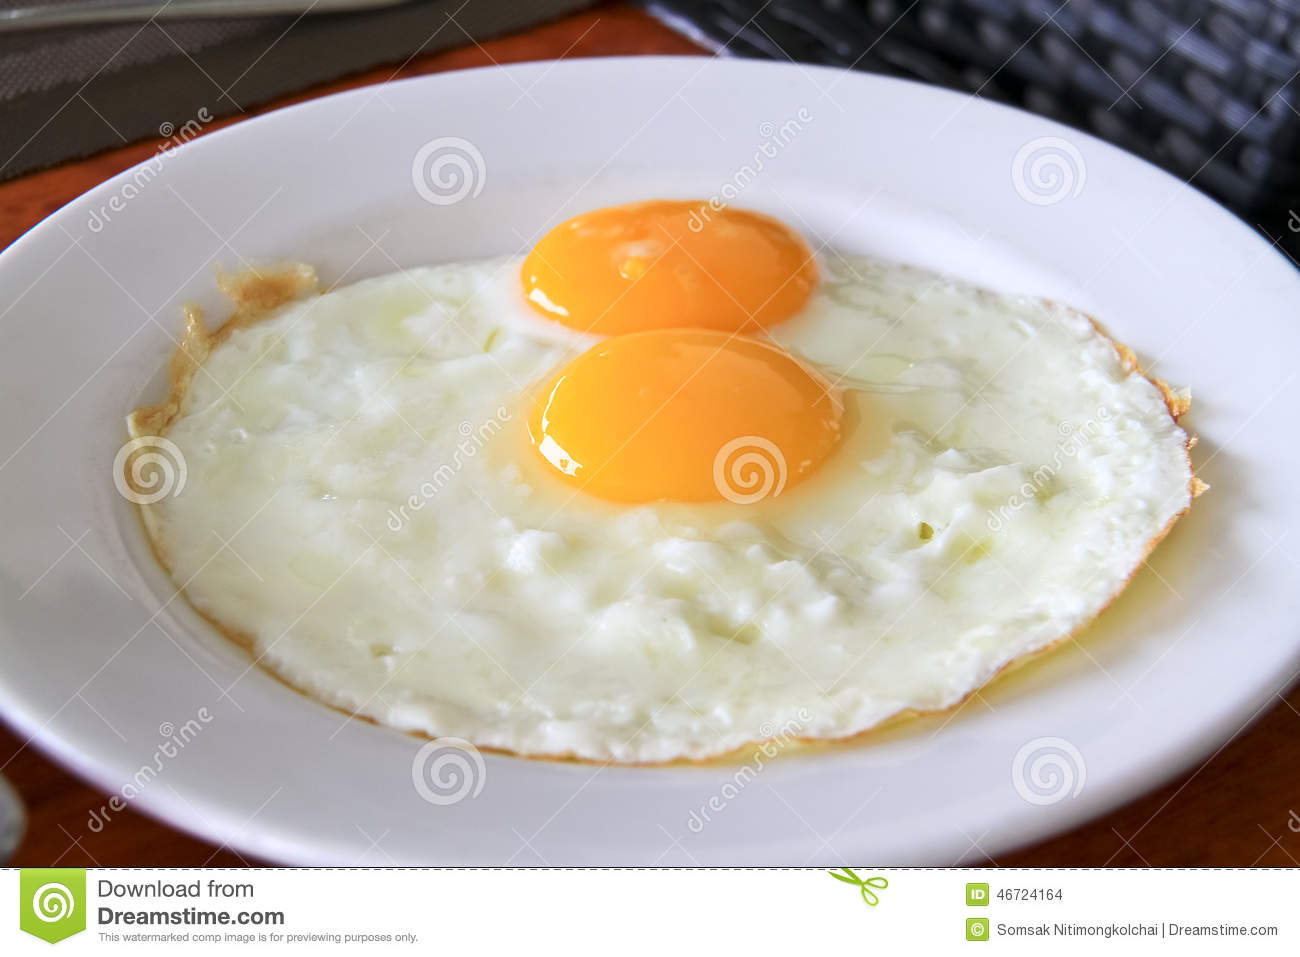 Breakfast With Two Fried Eggs In White Plate Stock Photo ...  |Fried Eggs On A Plate